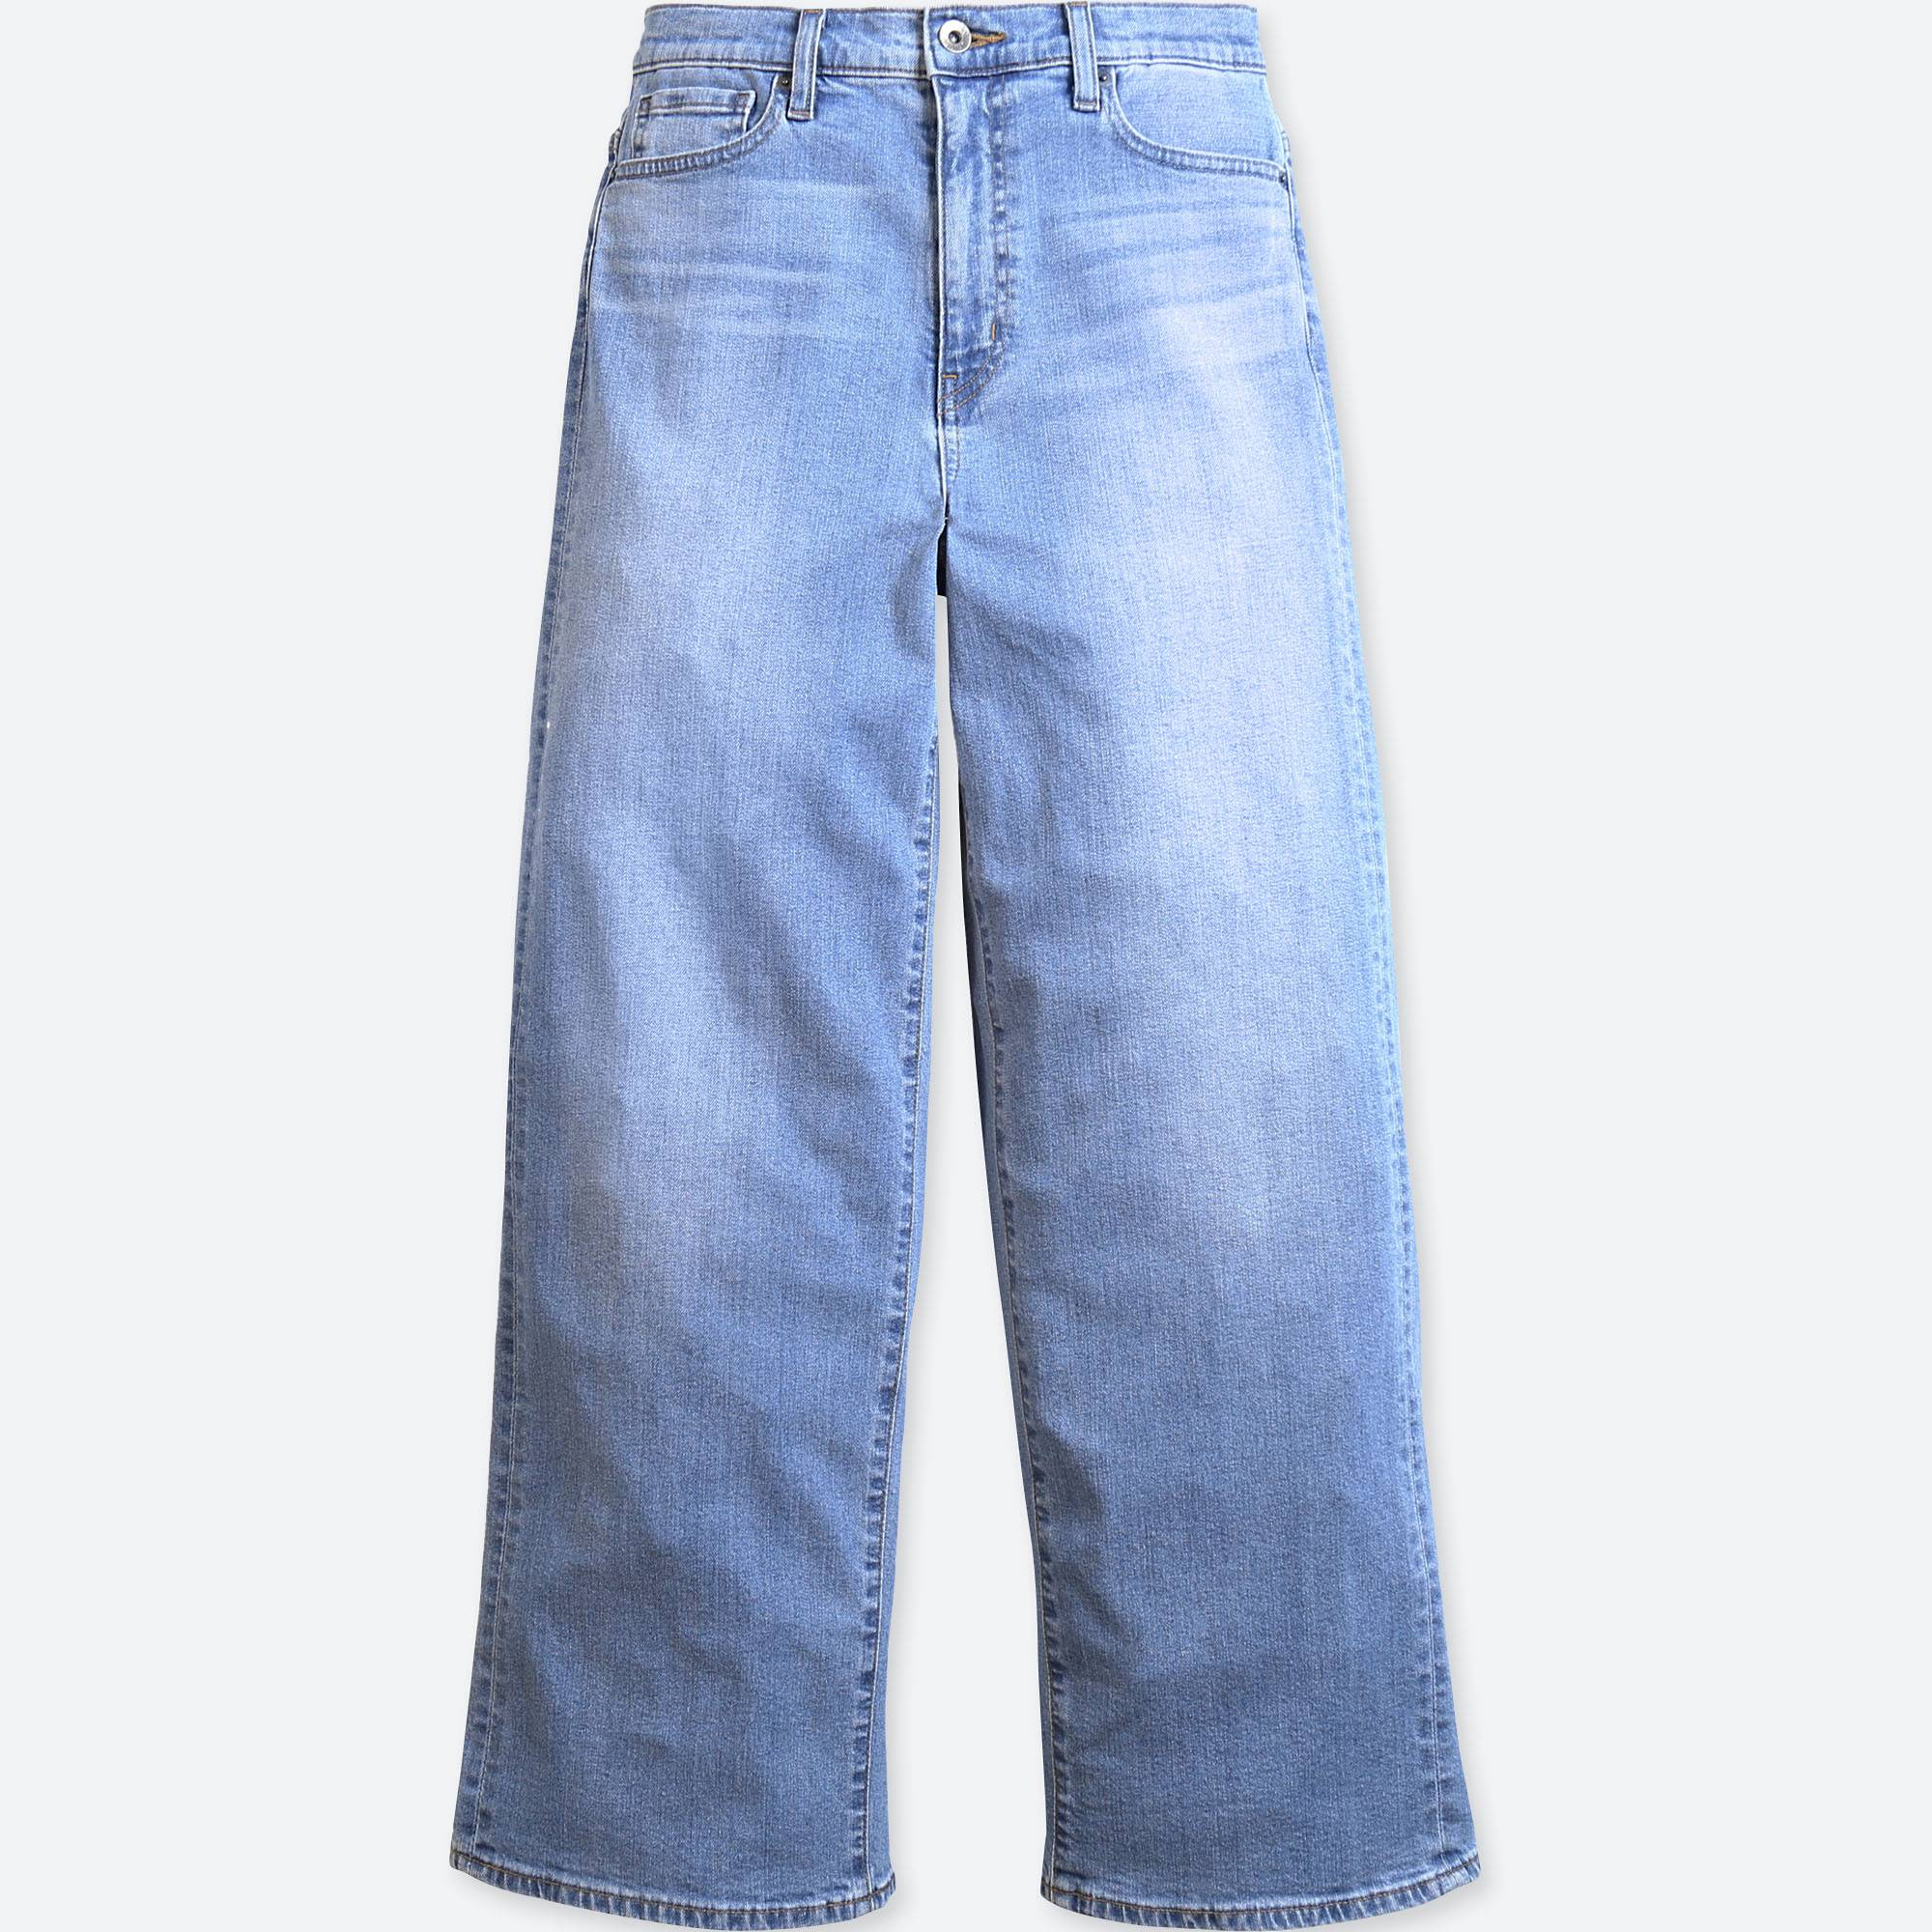 High waisted wide leg jeans australia